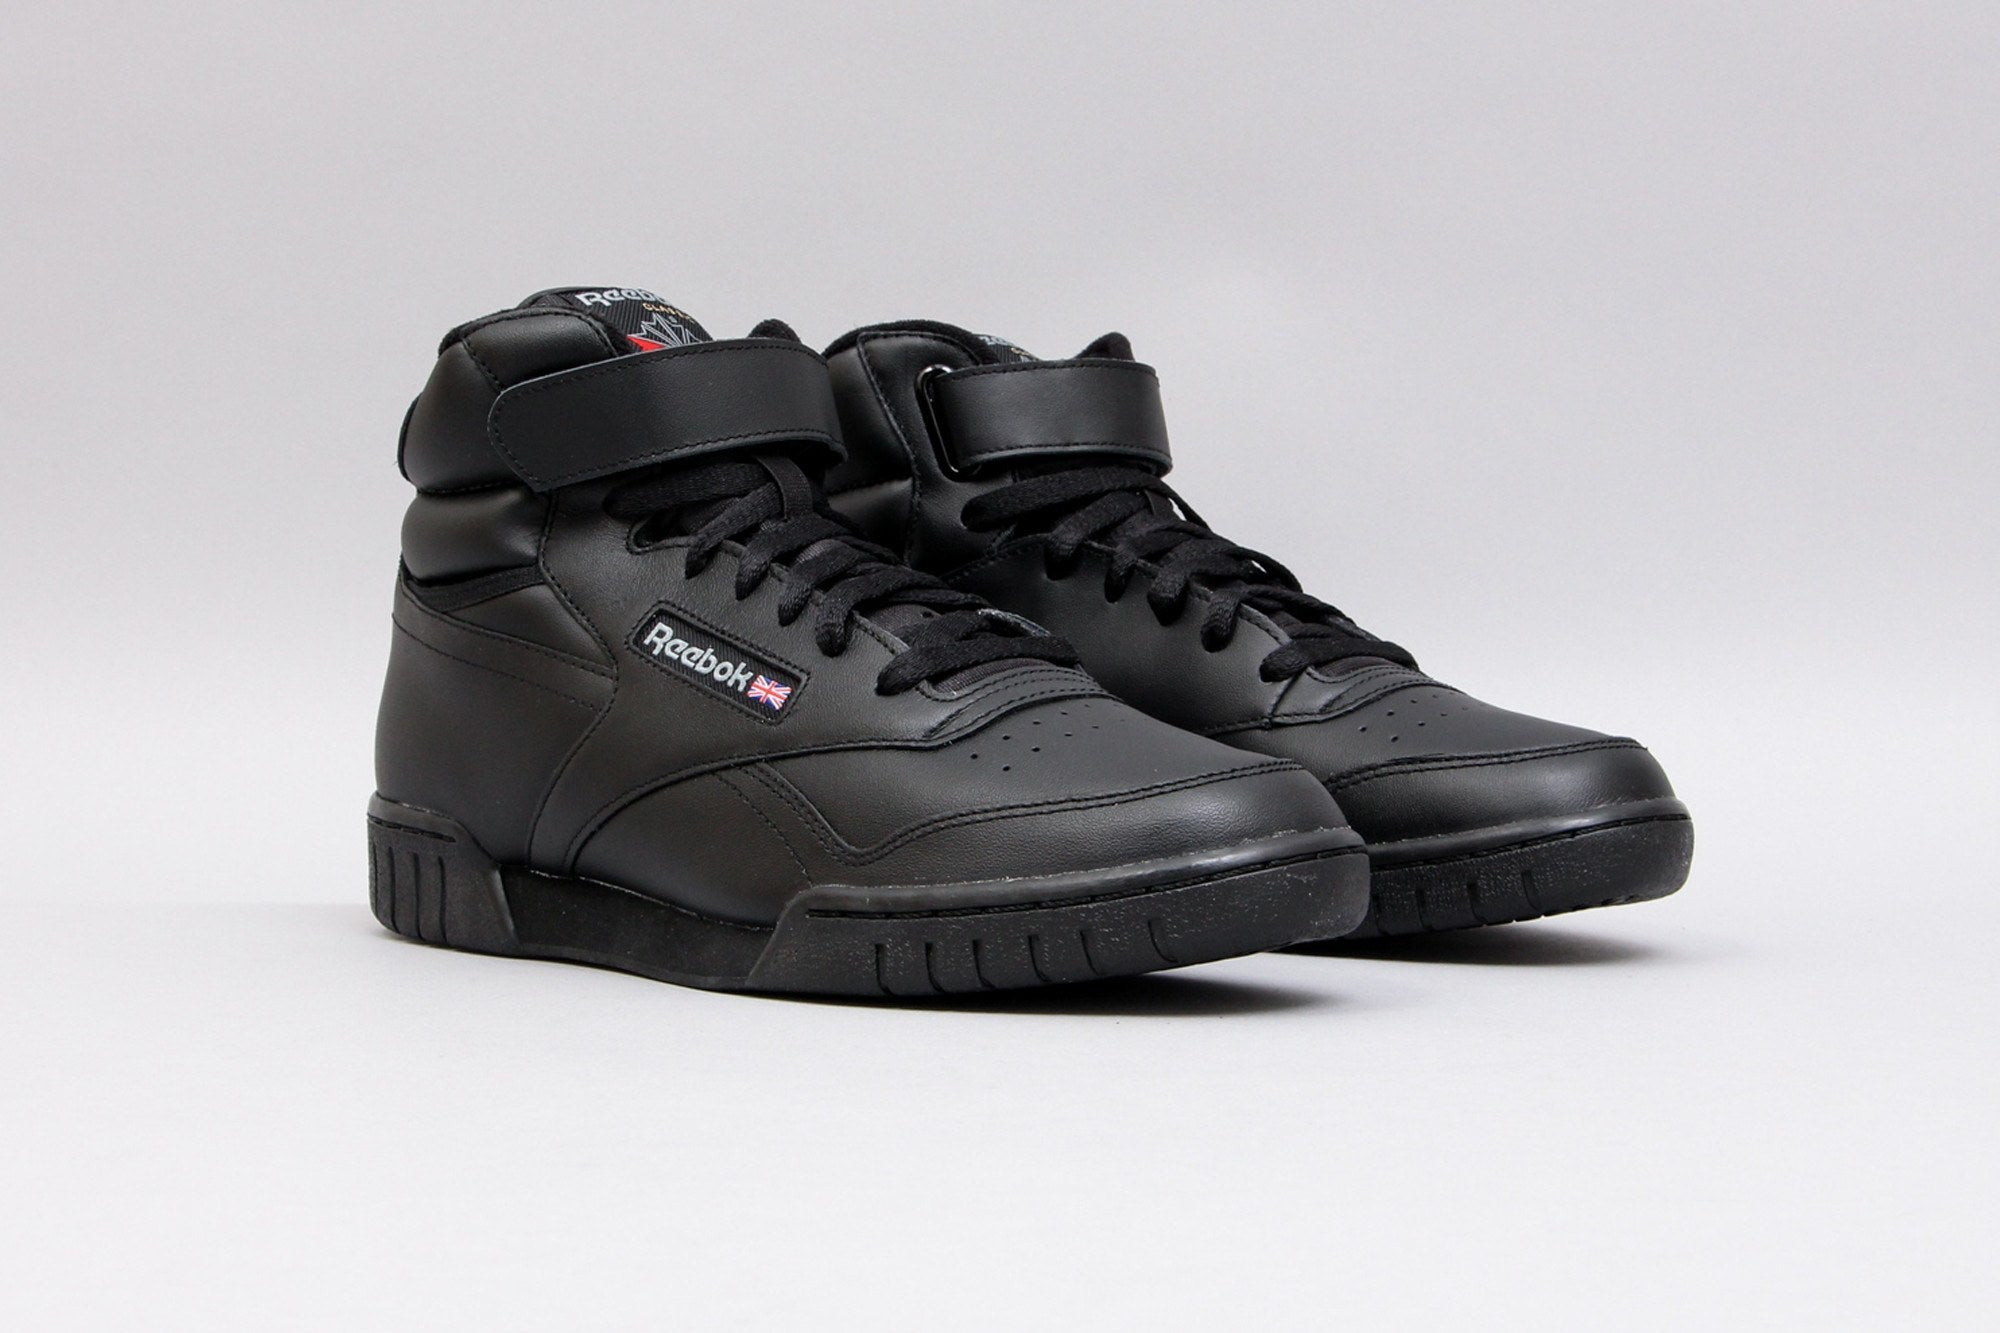 classic black reeboks for men